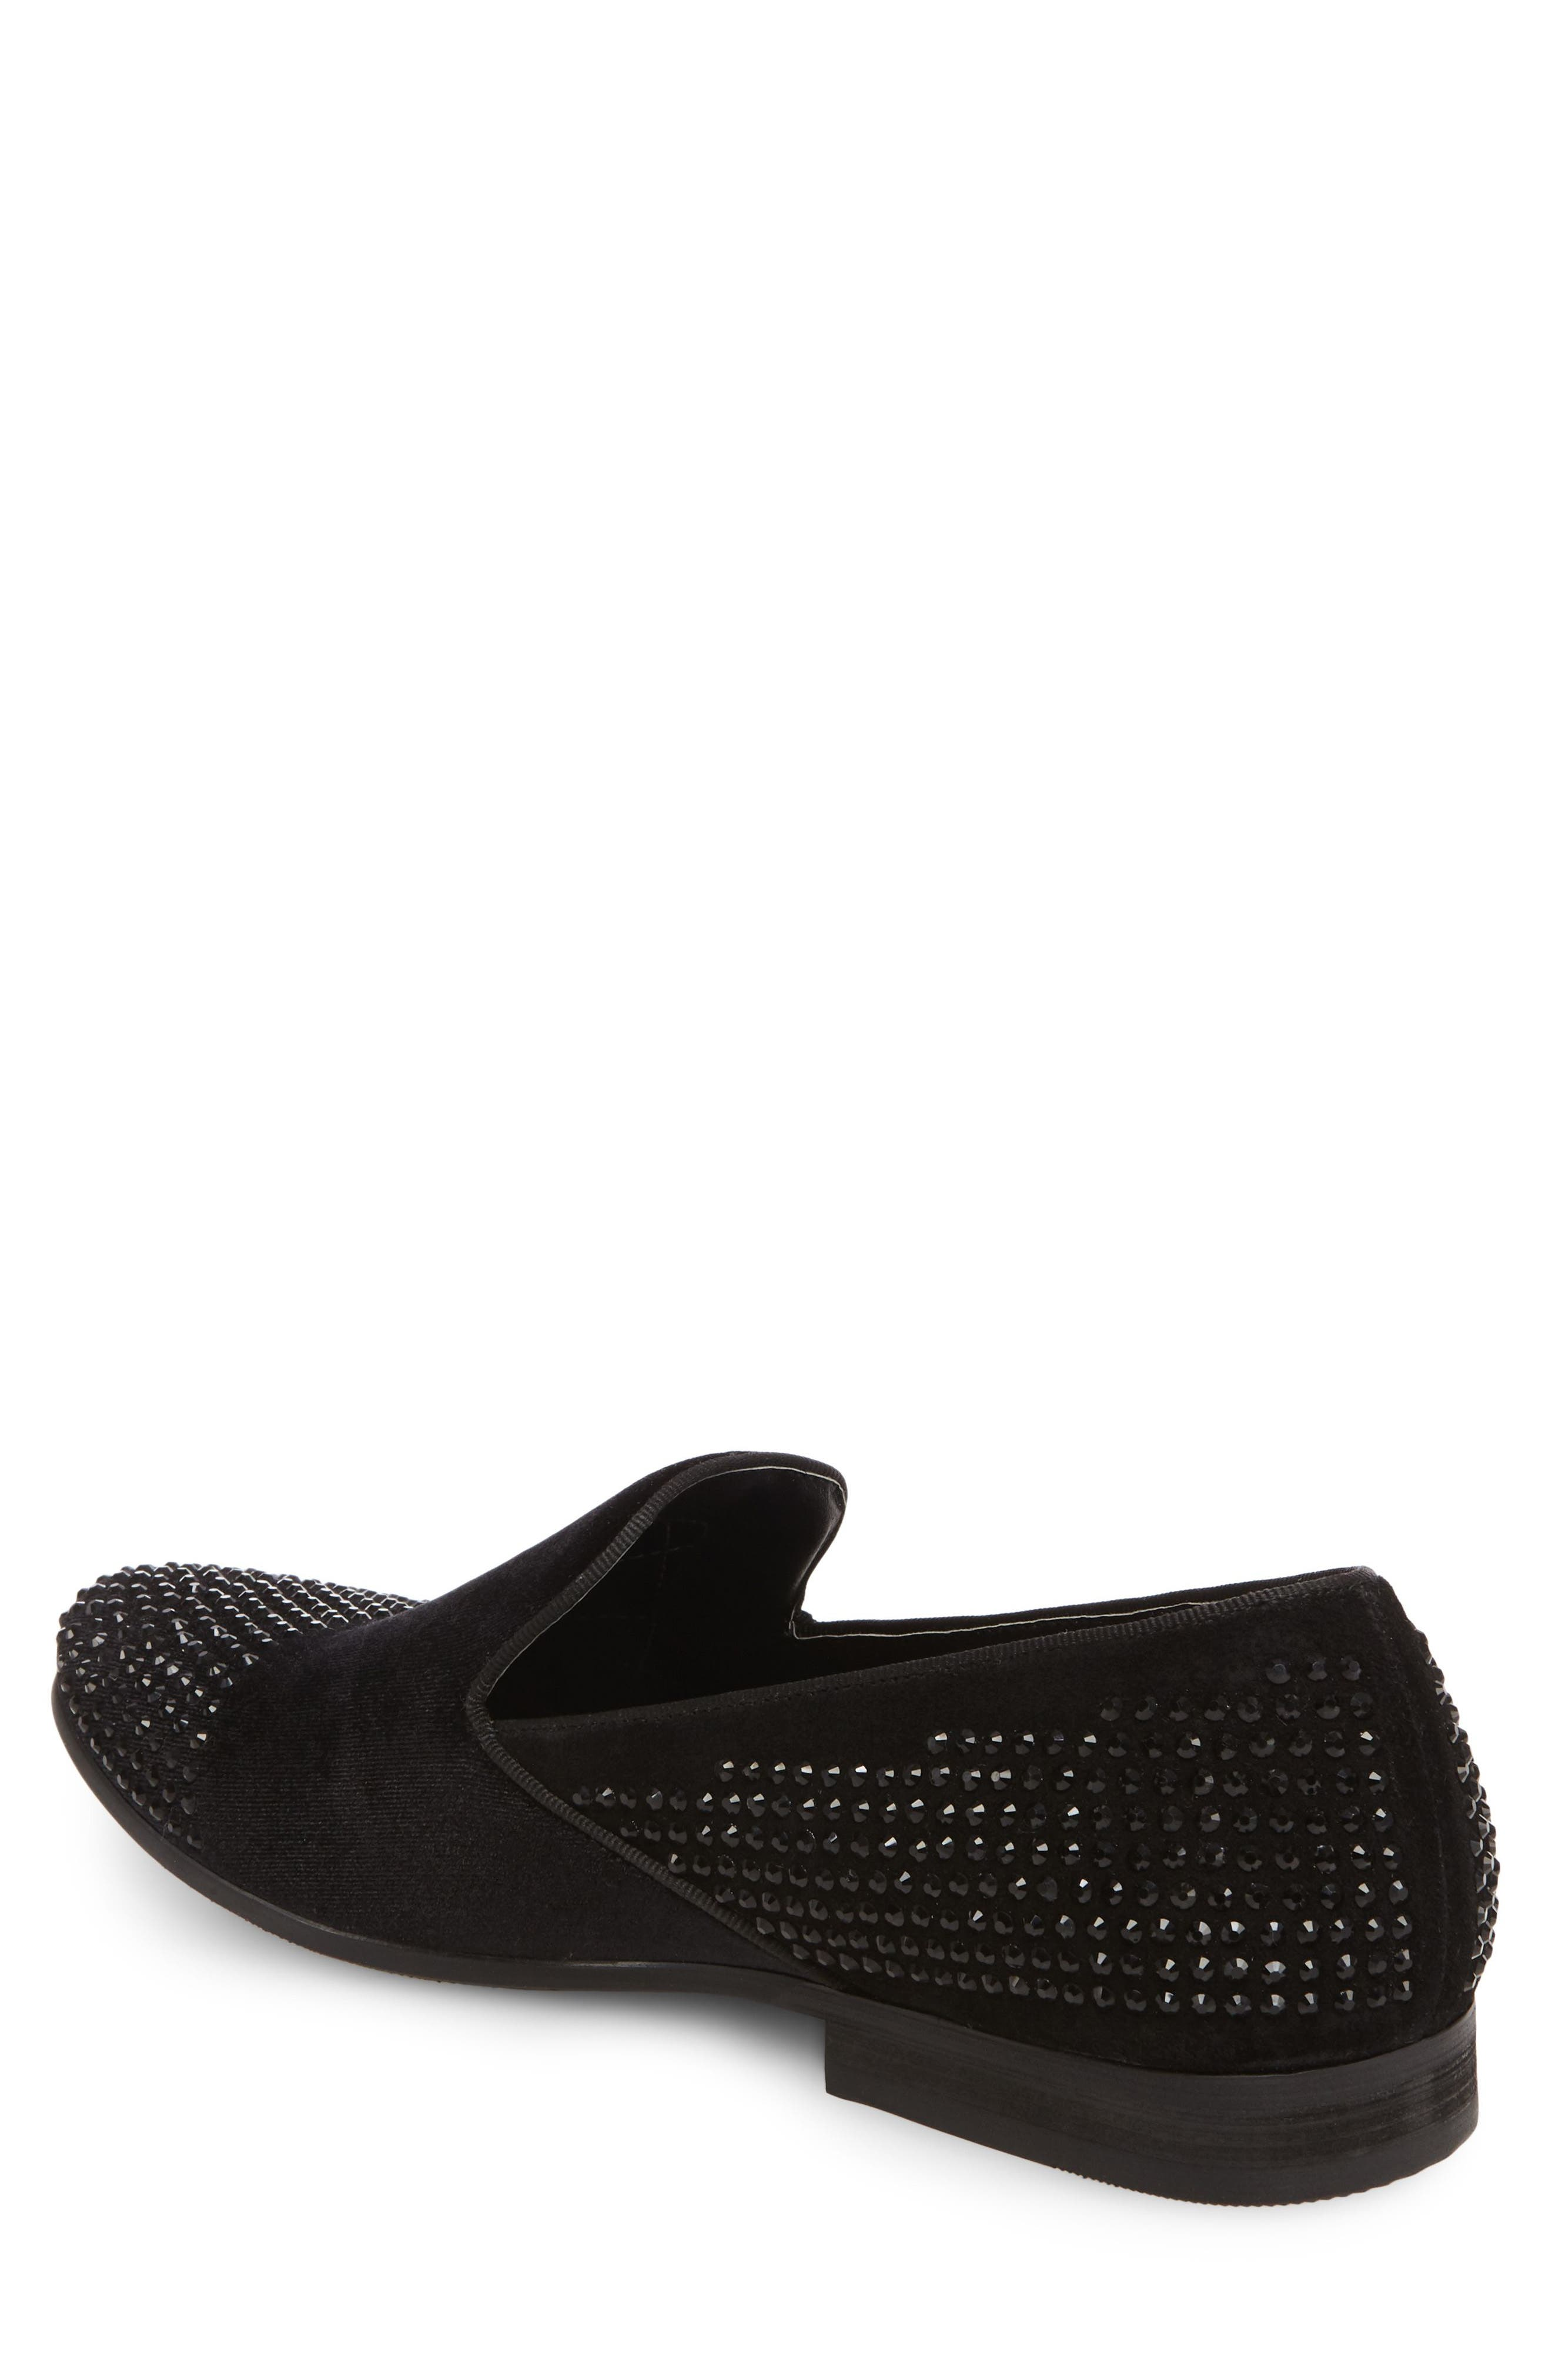 Clarity Loafer,                             Alternate thumbnail 2, color,                             Black Fabric